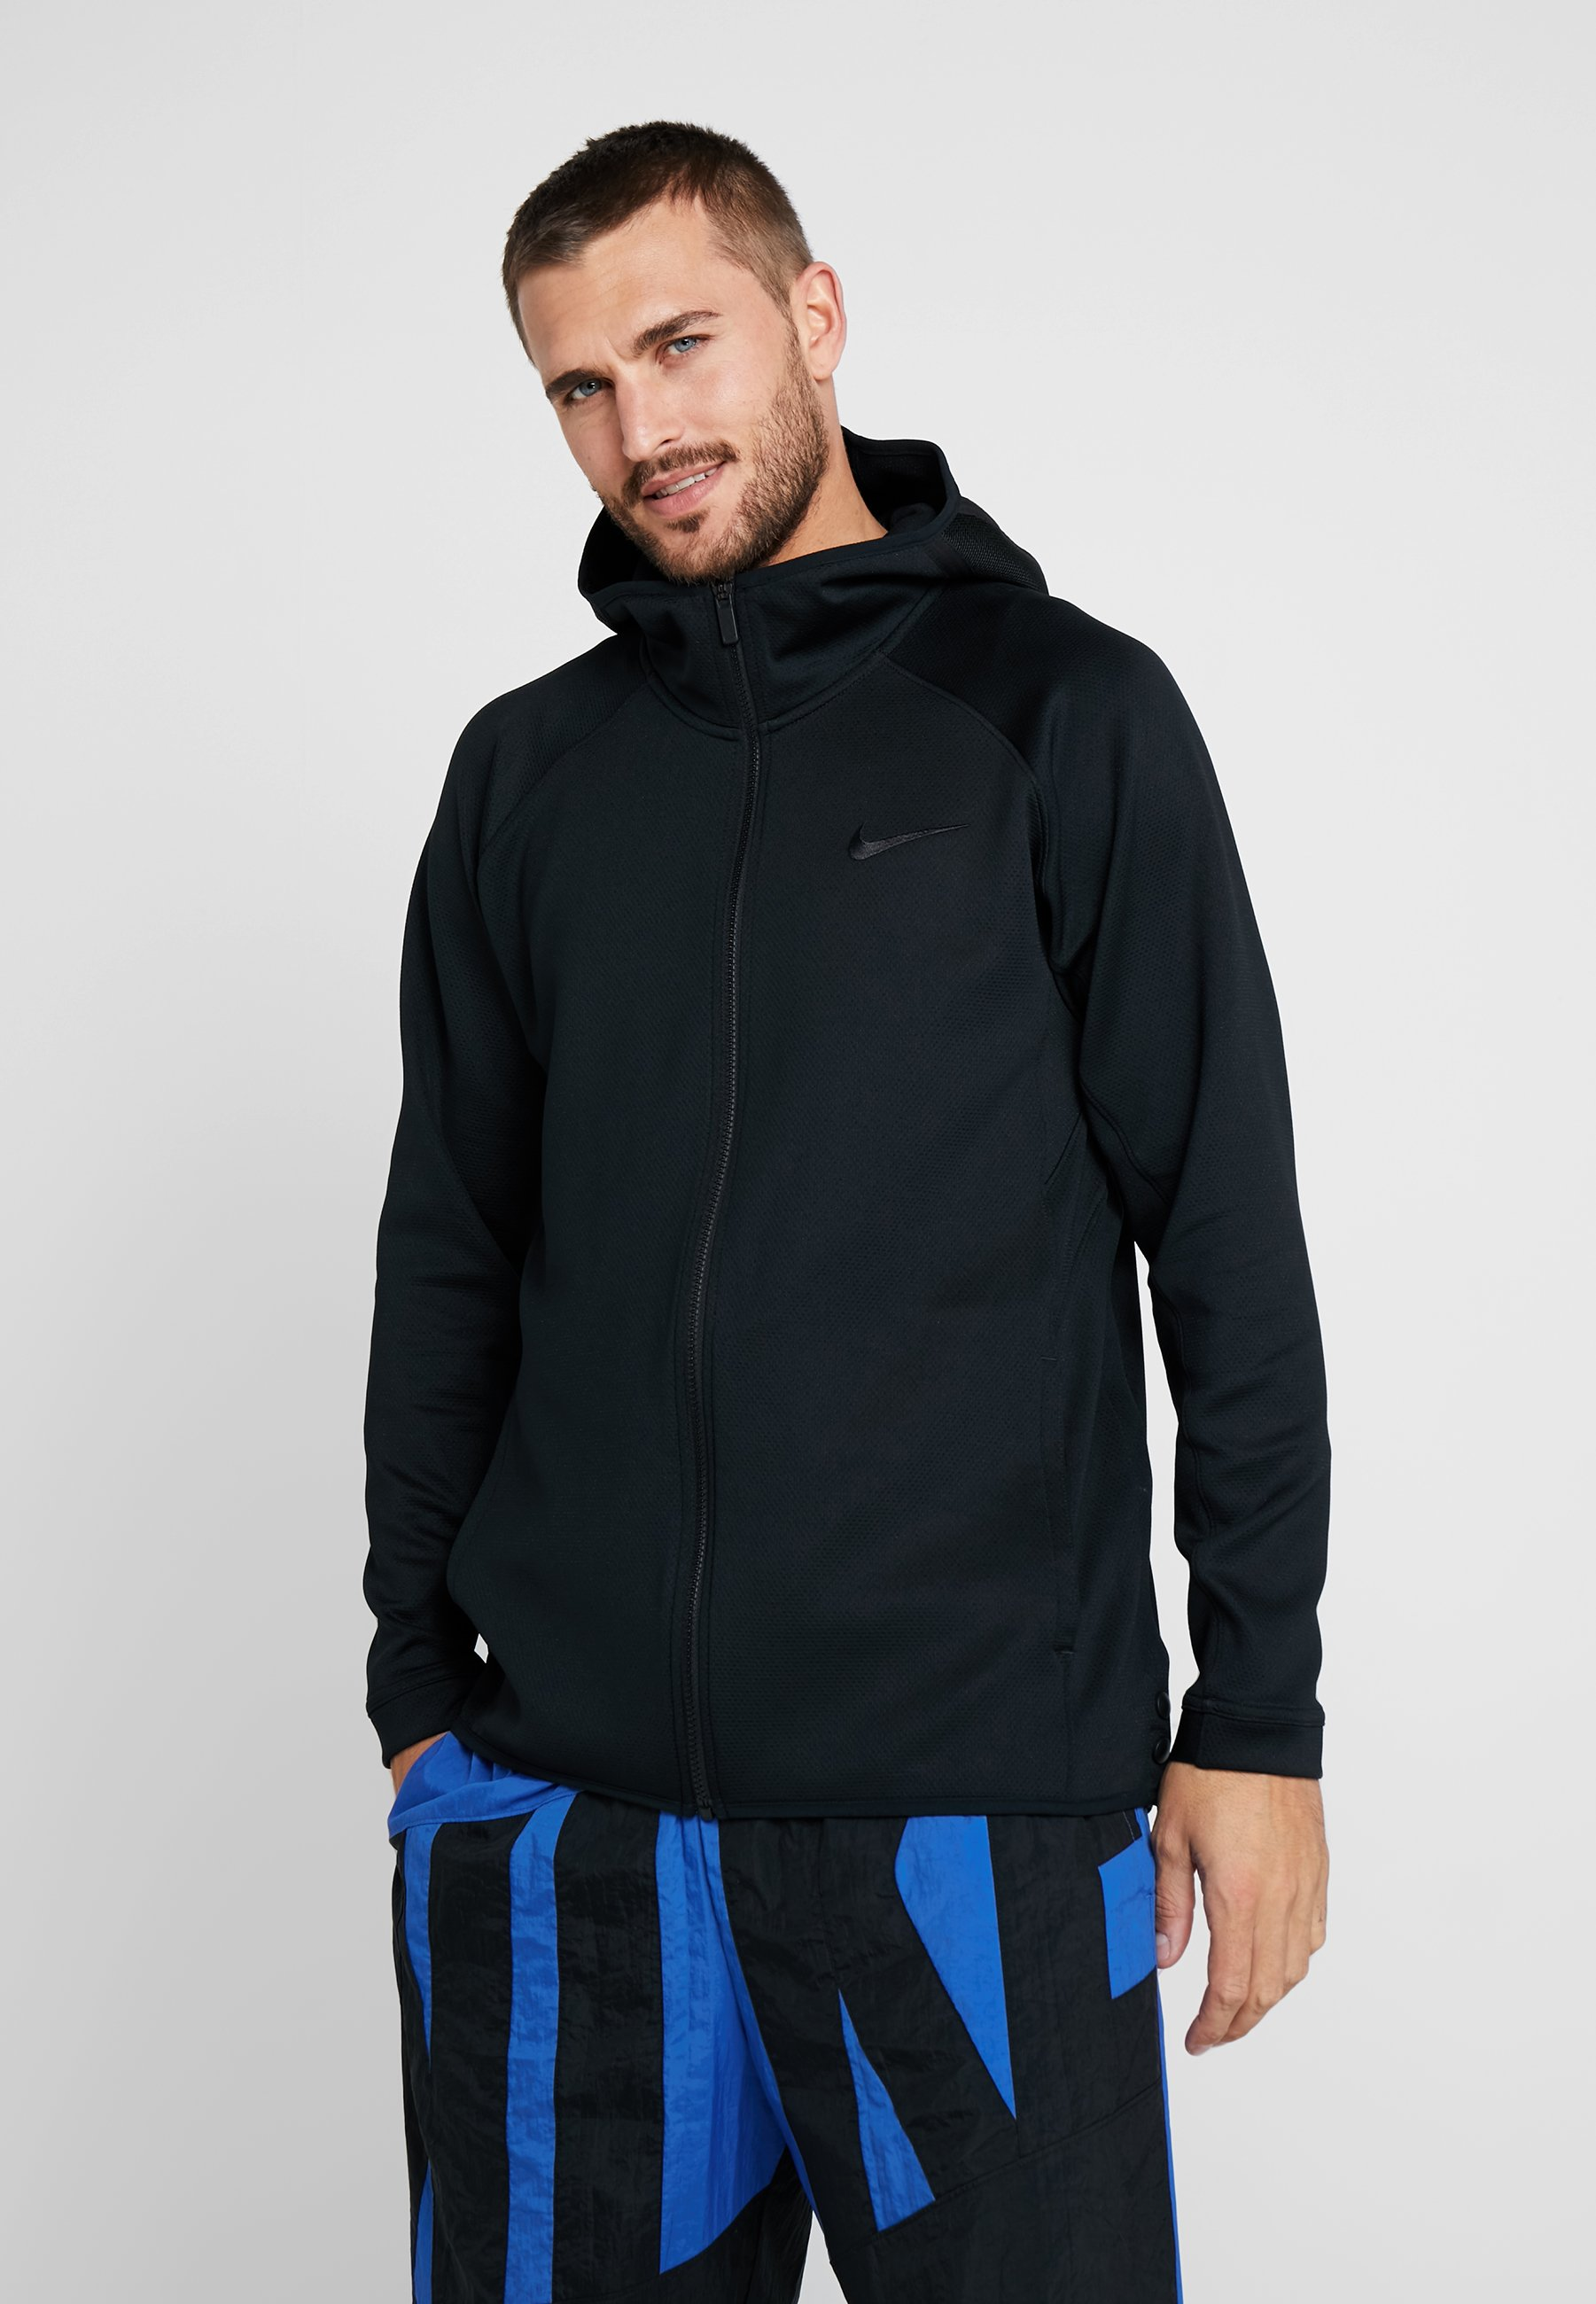 Nike Flex ShowtimeVeste dark Sweat En Performance Black Grey Grey Zippée cool Therma OnwPX80k